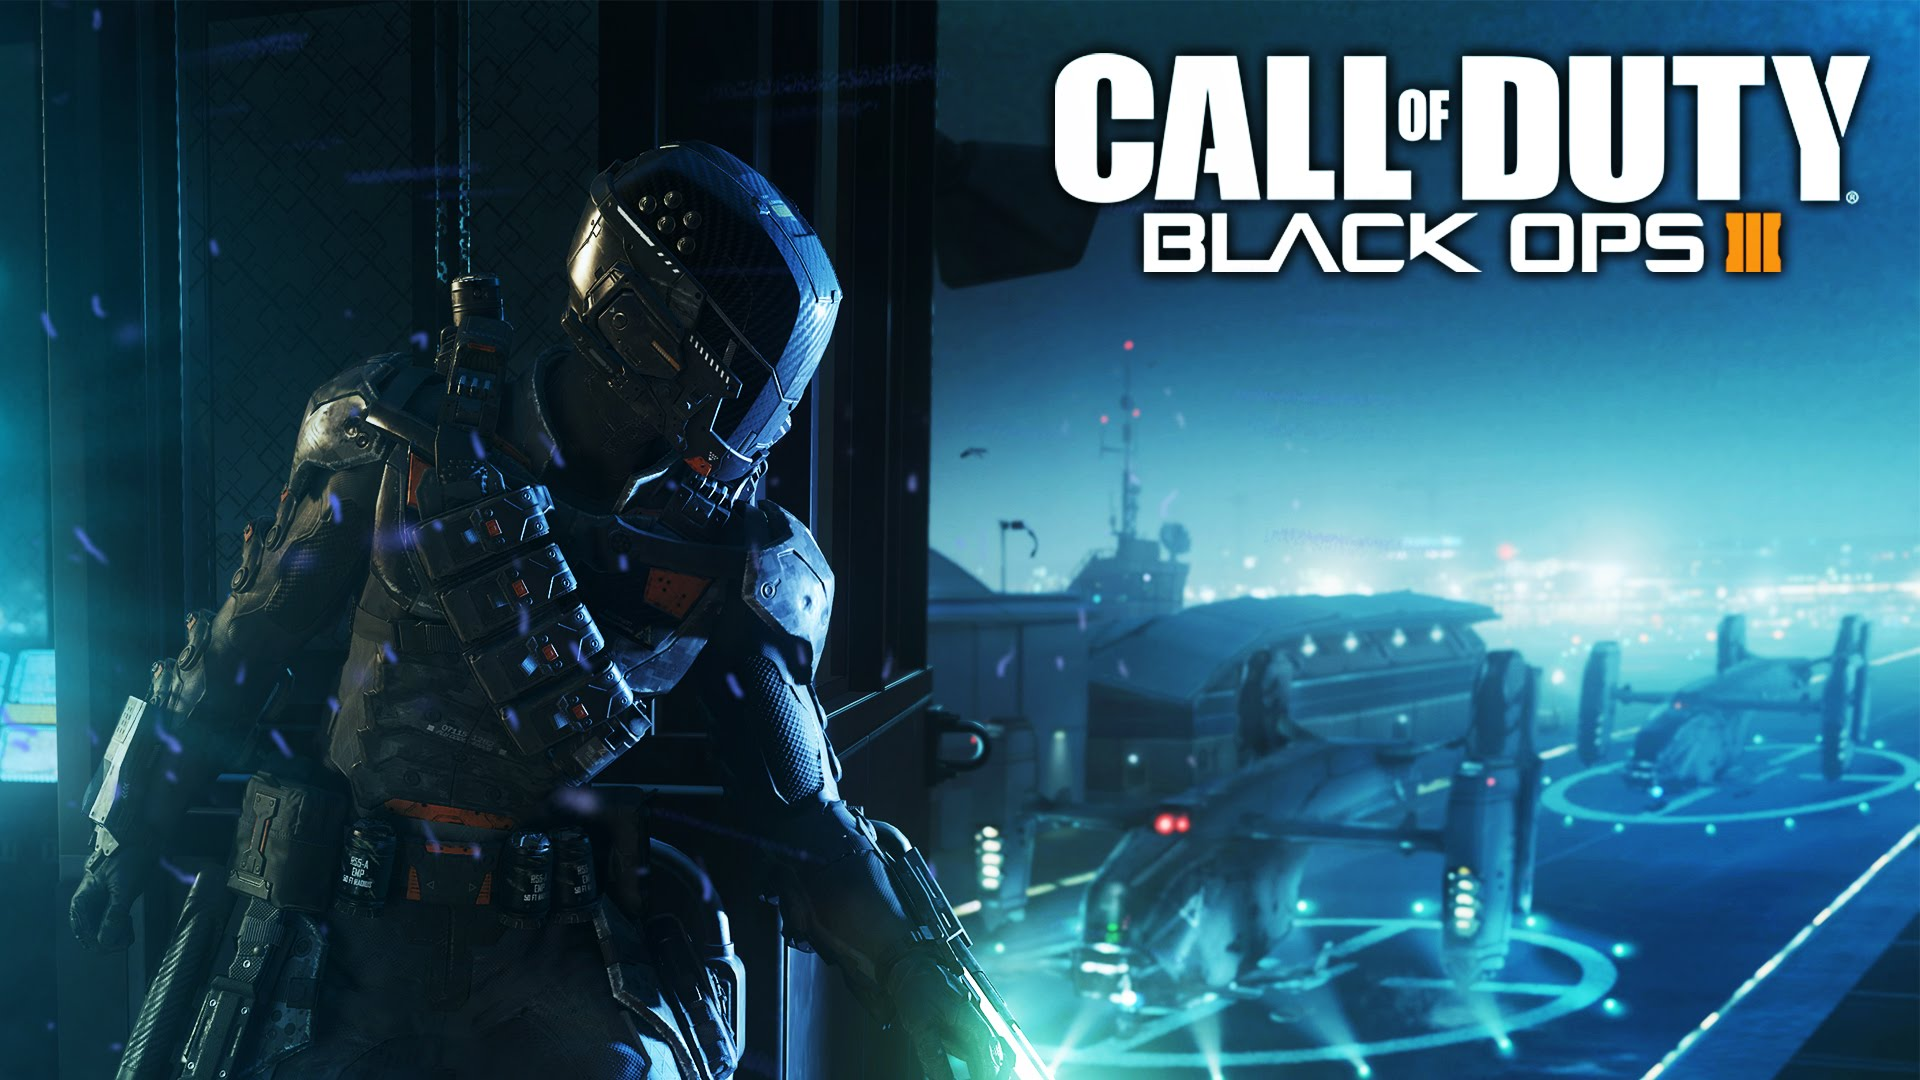 Call of Duty: Black Ops 3 HD Wallpapers | 7wallpapers net